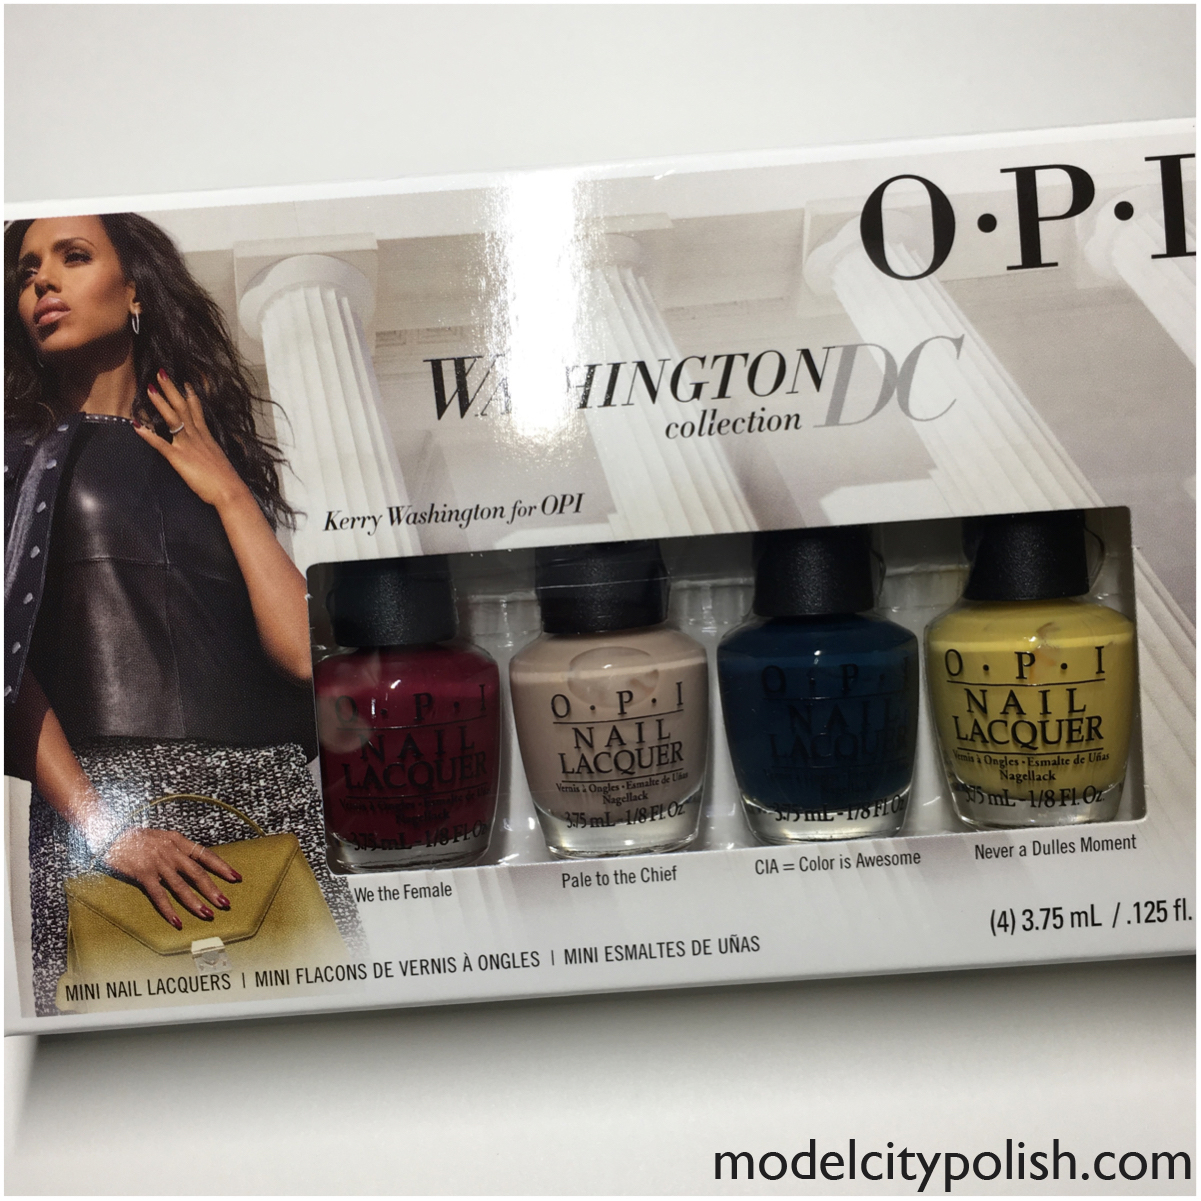 Washington DC Collection by OPI and Giveaway